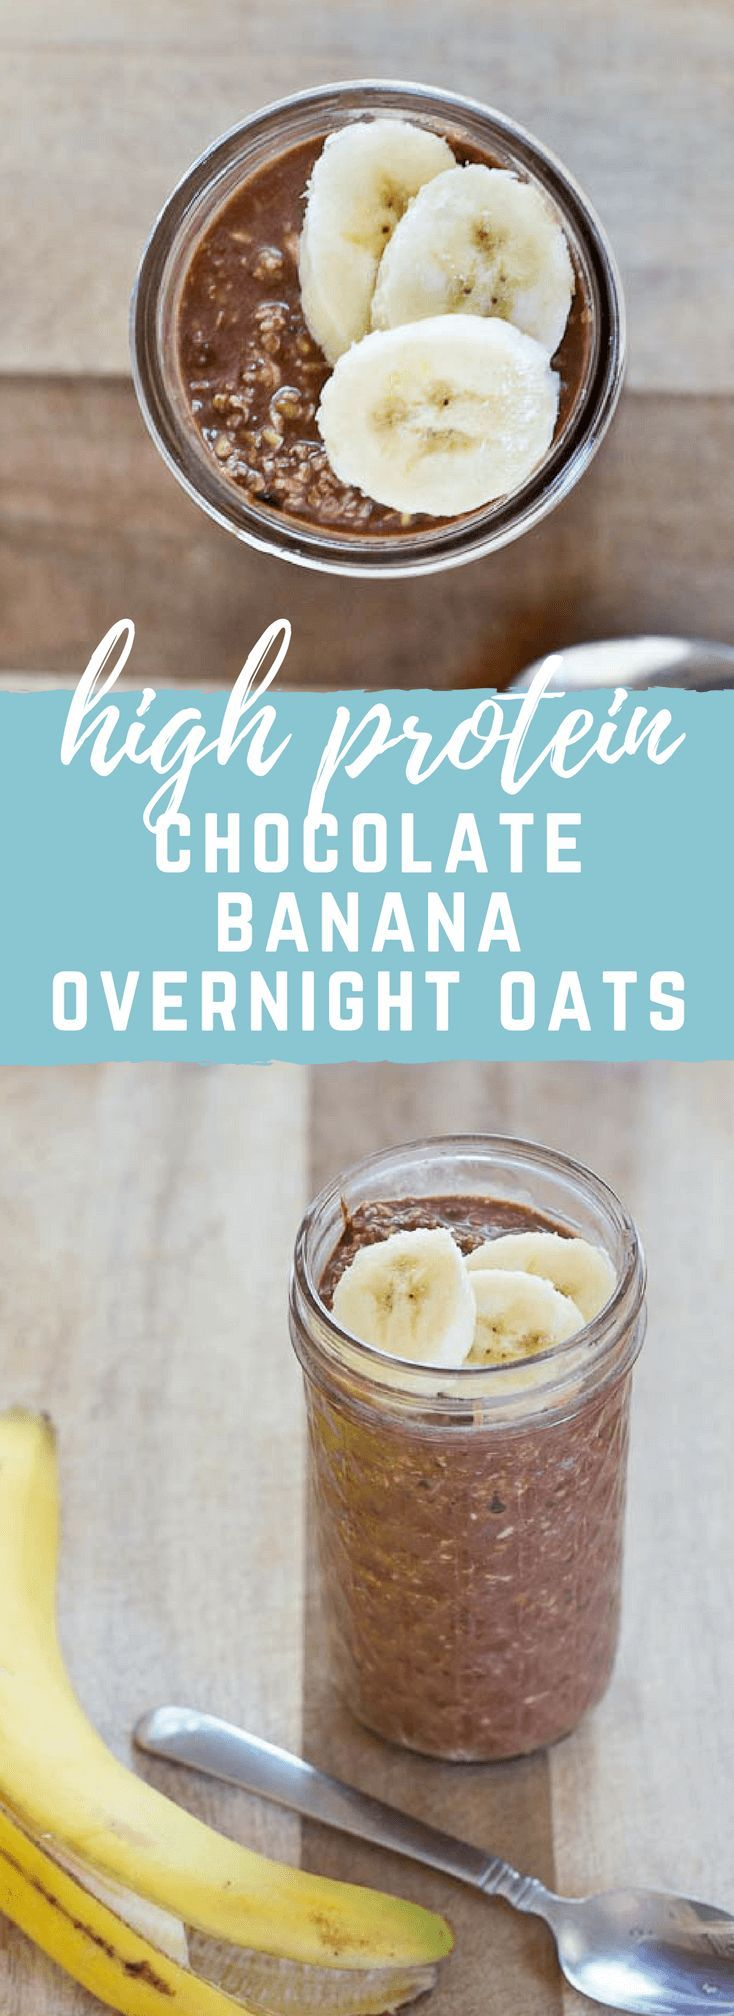 Rise and shine, it's breakfast time! Jumpstart your day with this high protein Chocolate Banana Overnight Oats recipe... all dessert-y and no cooking required. Grab and go convenience. Gluten-free. Great source of protein and fiber.